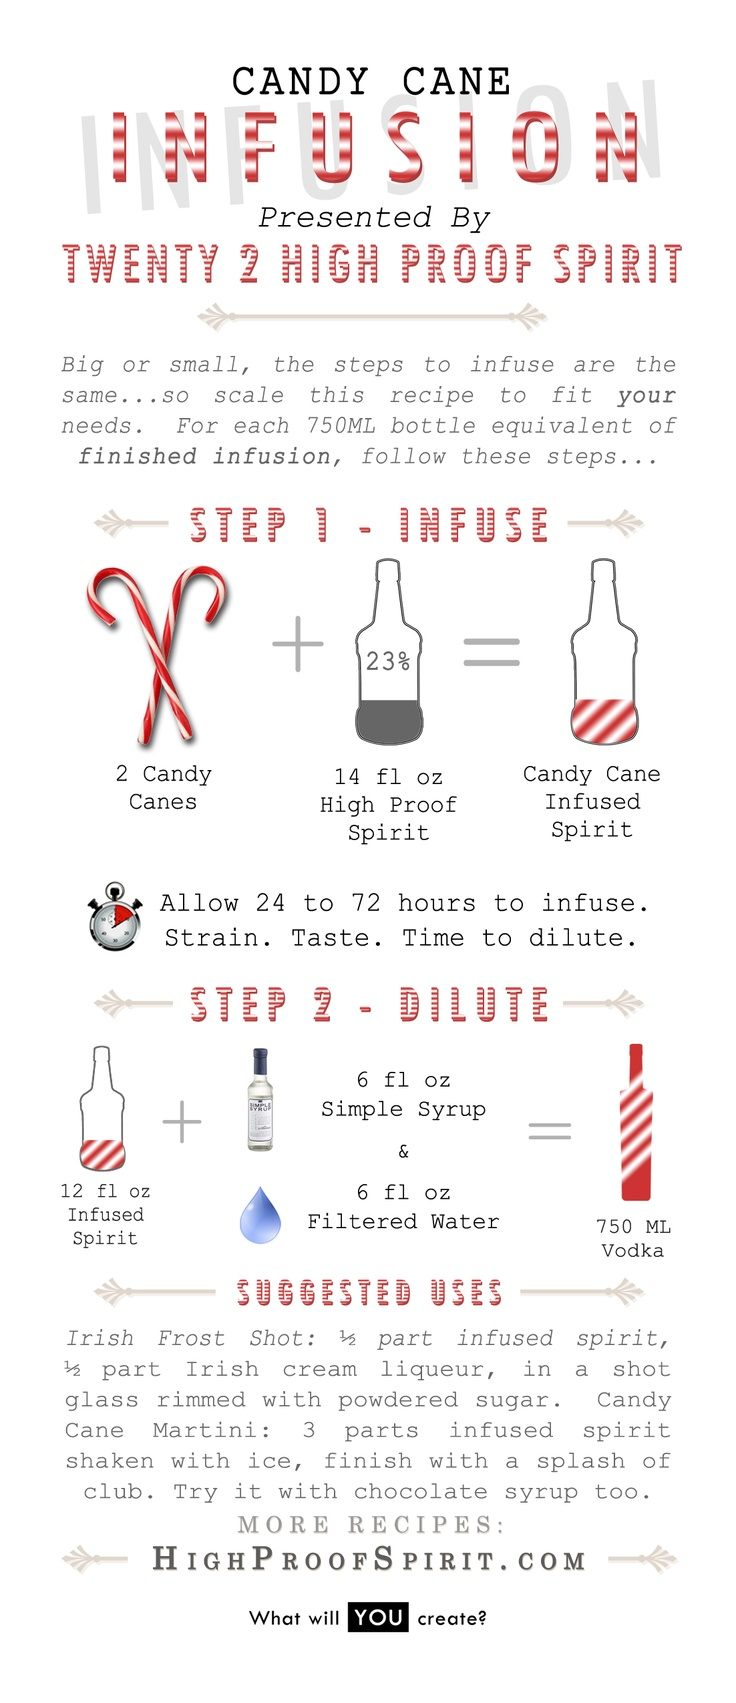 candy-cane-infused-vodka-recipe-card